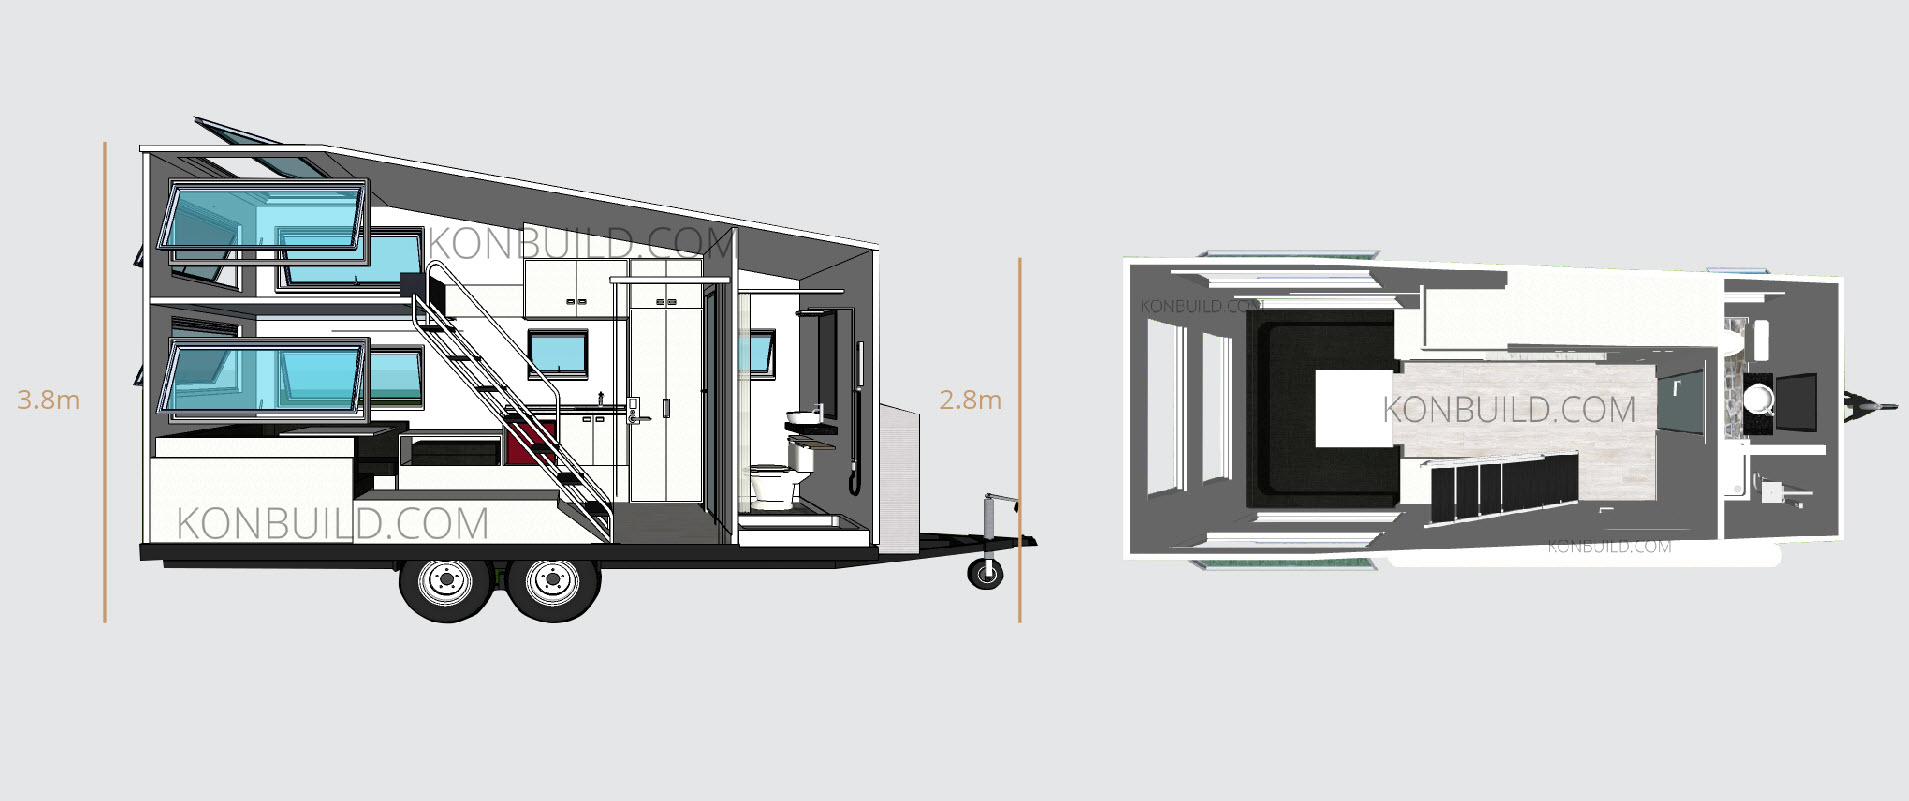 Affordable Portable Office Accommodation caravan travel trailer tiny home from china.jpg